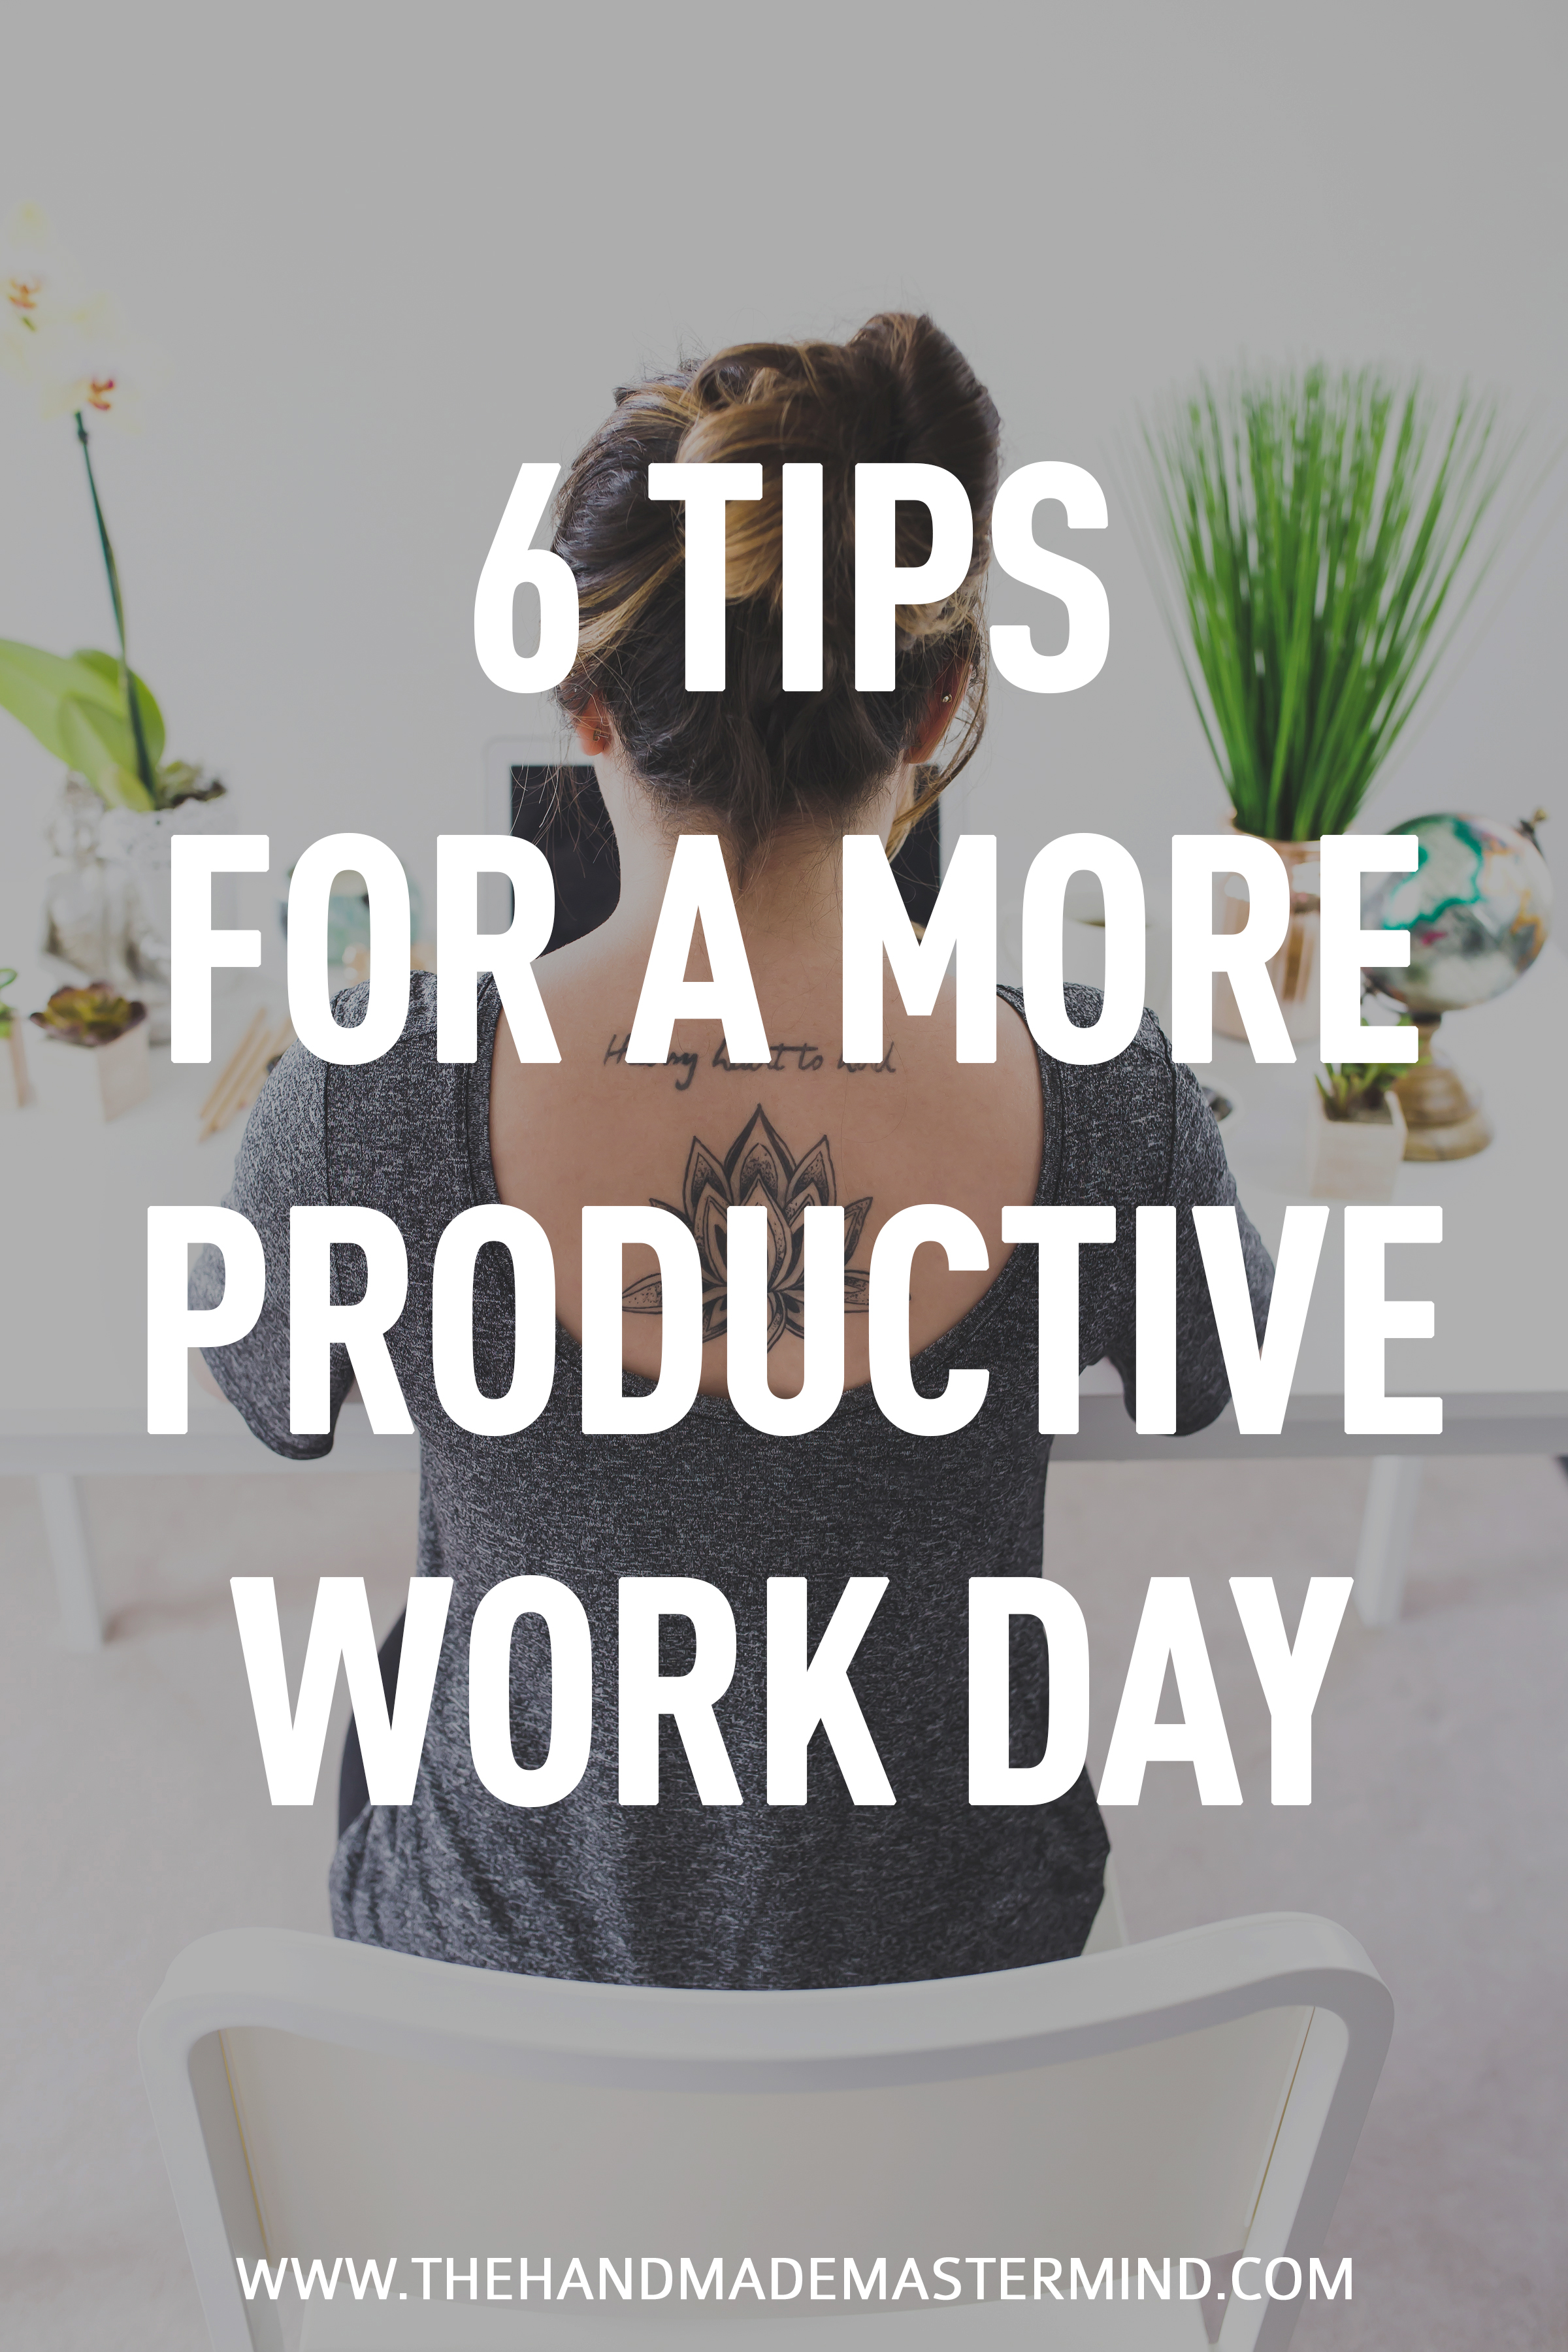 6 Tips For a More Productive Workday - The Handmade Mastermind